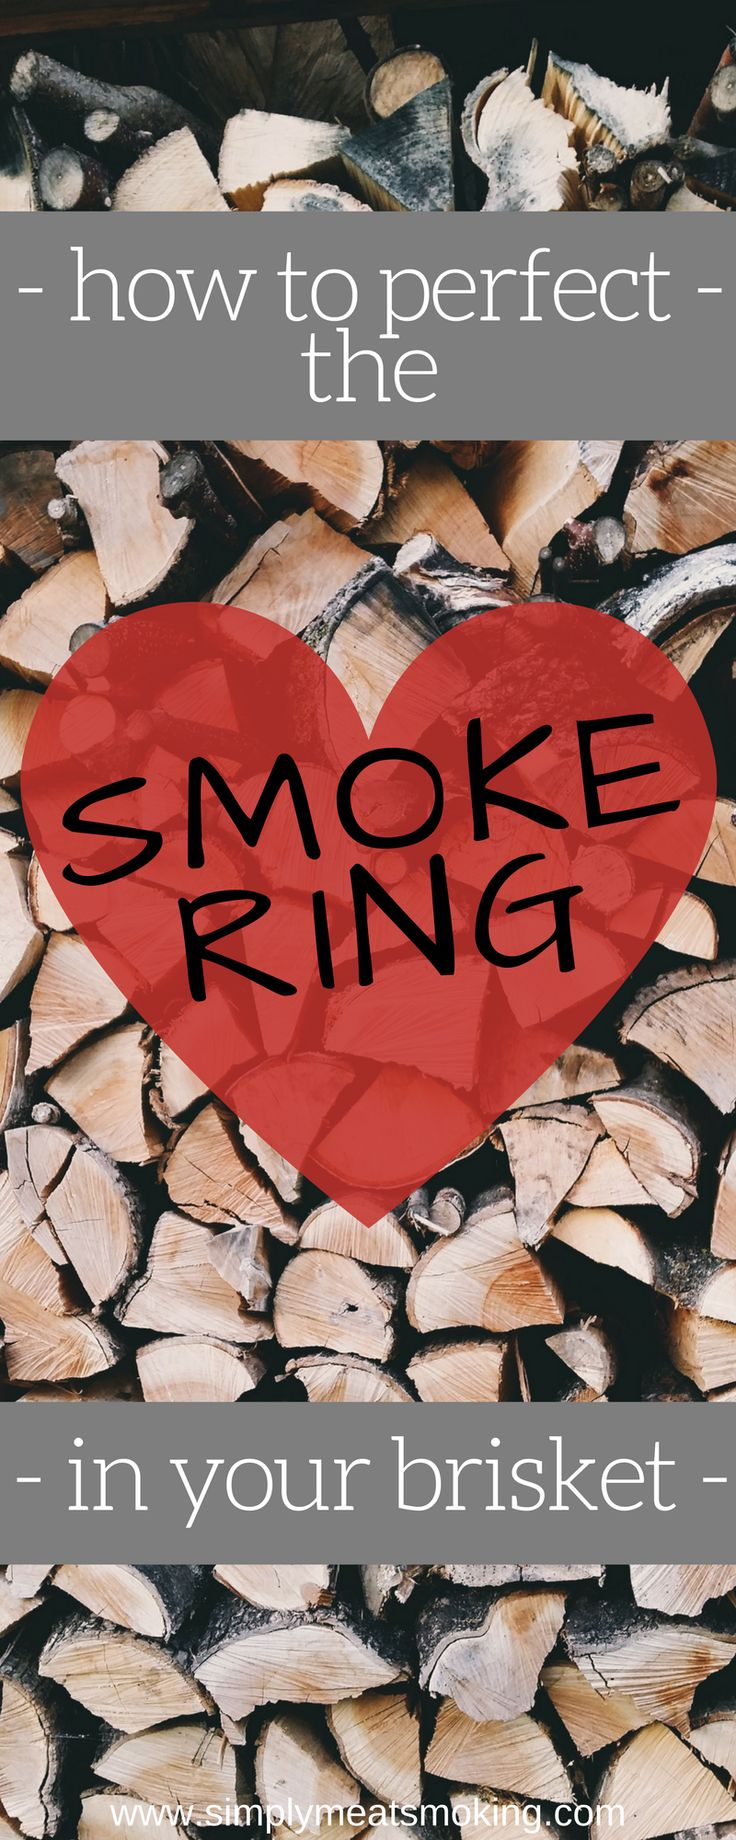 A smoke ring is what many of us strive for. But what is it and how do you get one??  BBQ Recipes | Gas Barbecue Recipes | Gas Smoker Recipes | Gas Grill Recipes | Best Gas Grill Recipes | Best Gas Smoker Recipes | Best Gas BBQ Recipes | Best Gas Barbecue